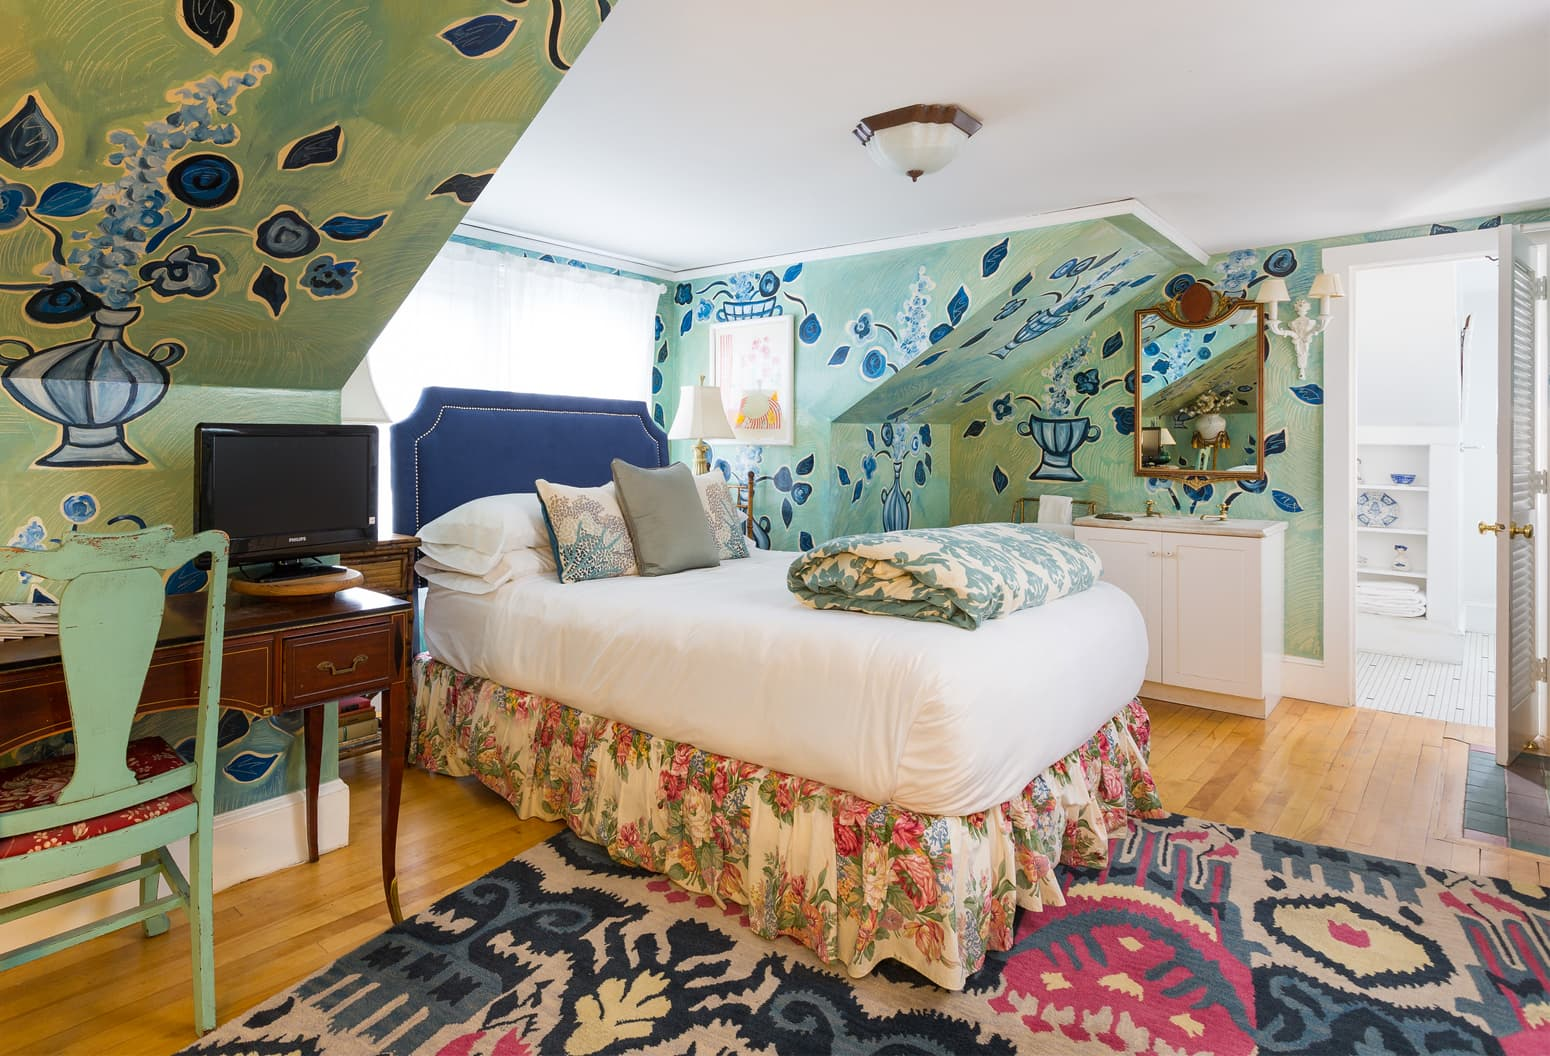 Matisse guest room with bold walls